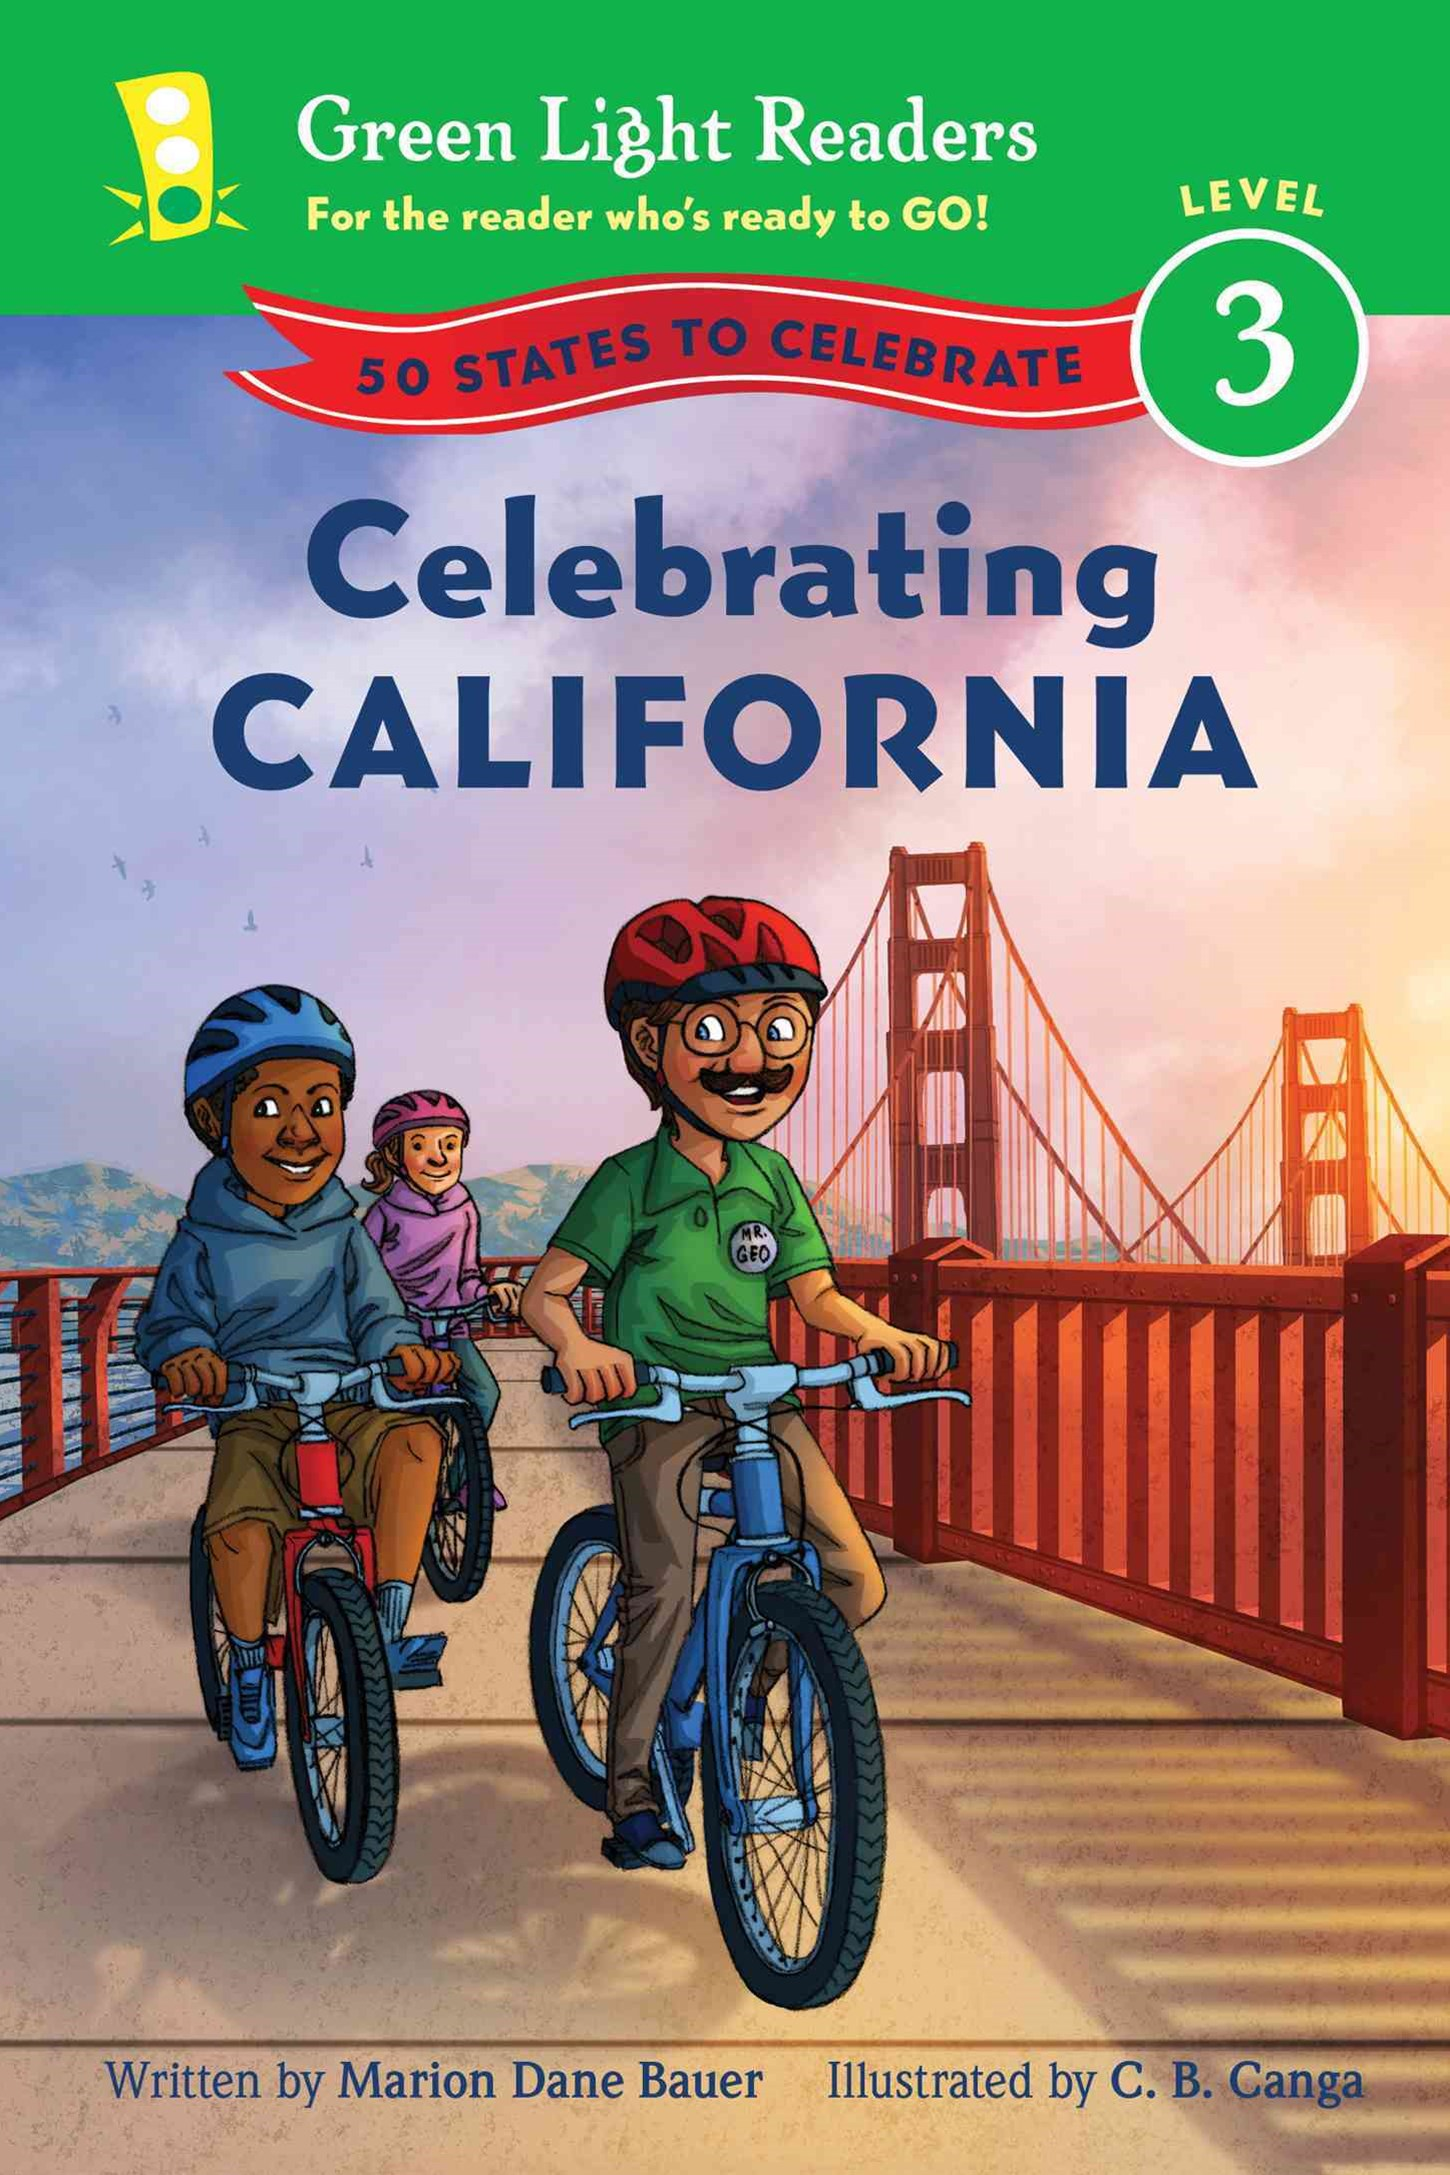 Celebrating California: 50 States to Celebrate: Green Light Readers, Level 3